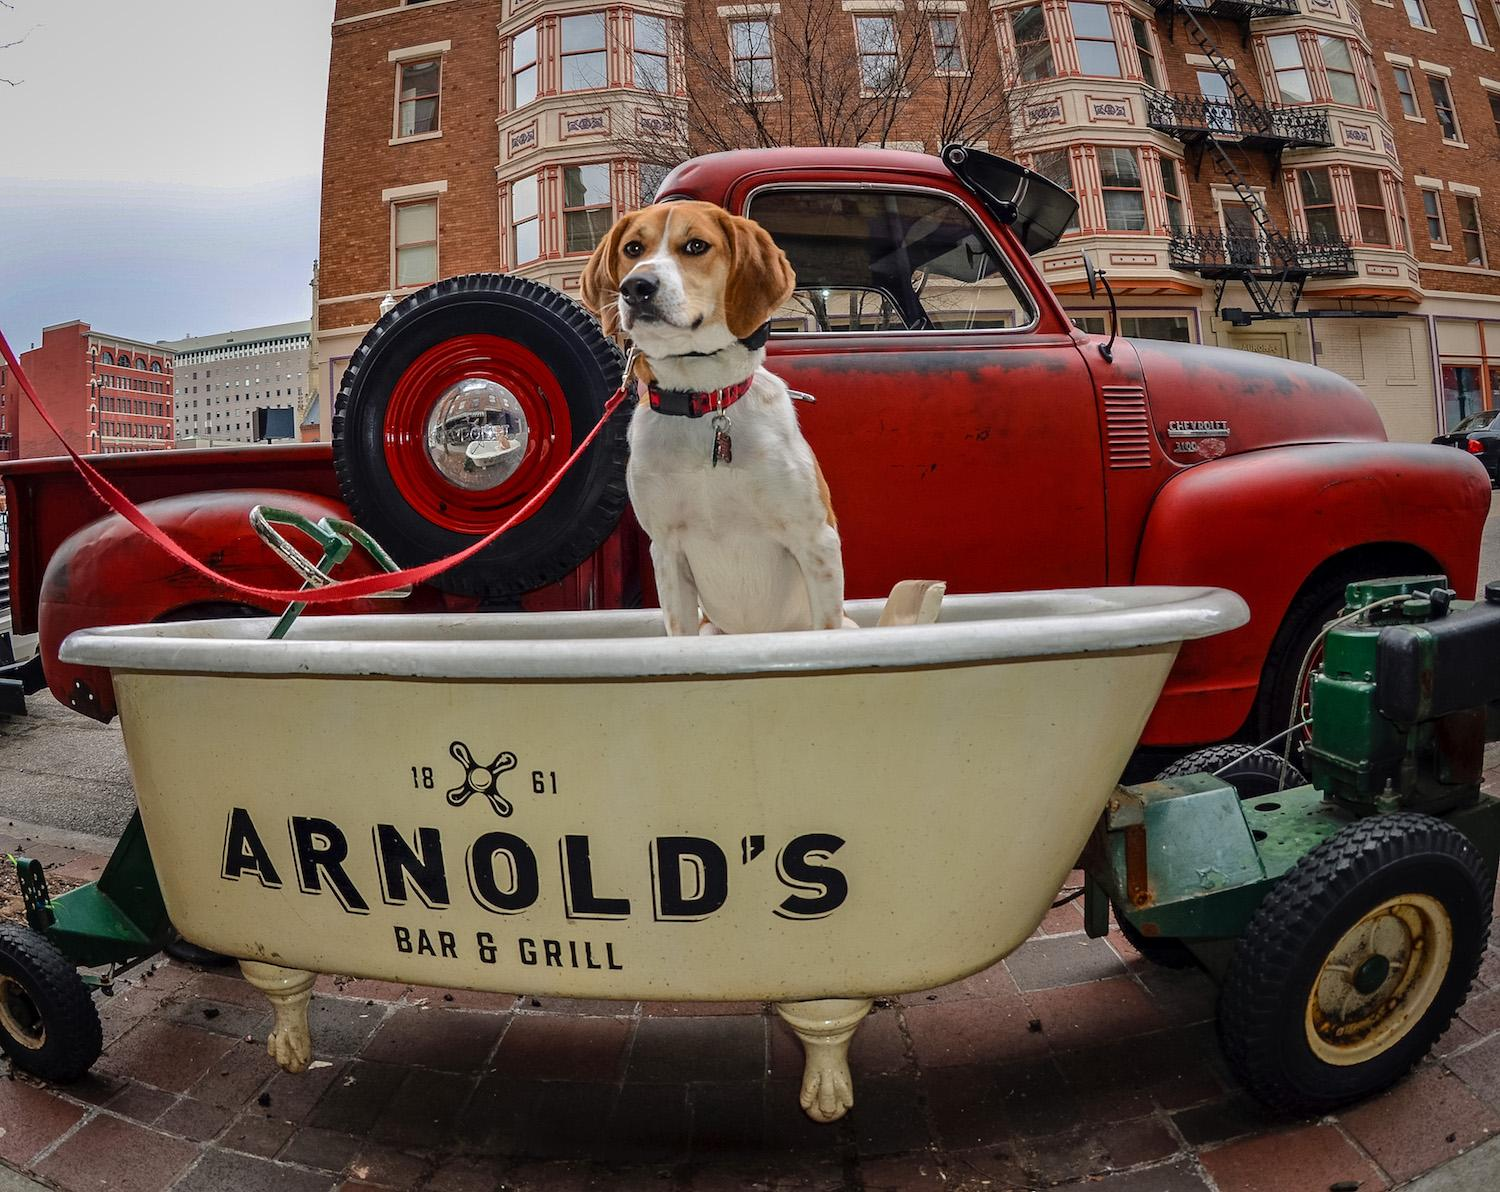 LOCATION: Arnold's bathtub / Mollie is a local Instagram celebrity. Famous for posing on fire hydrants in front of ArtWorks murals (and other Cincy landmarks), this hound dog has officially stolen our hearts. You can follow her adventures on Instagram @molliethehounddoggie / Image: Patti Mossey (Mollie's owner and #1 fan) // Published: 5.1.18